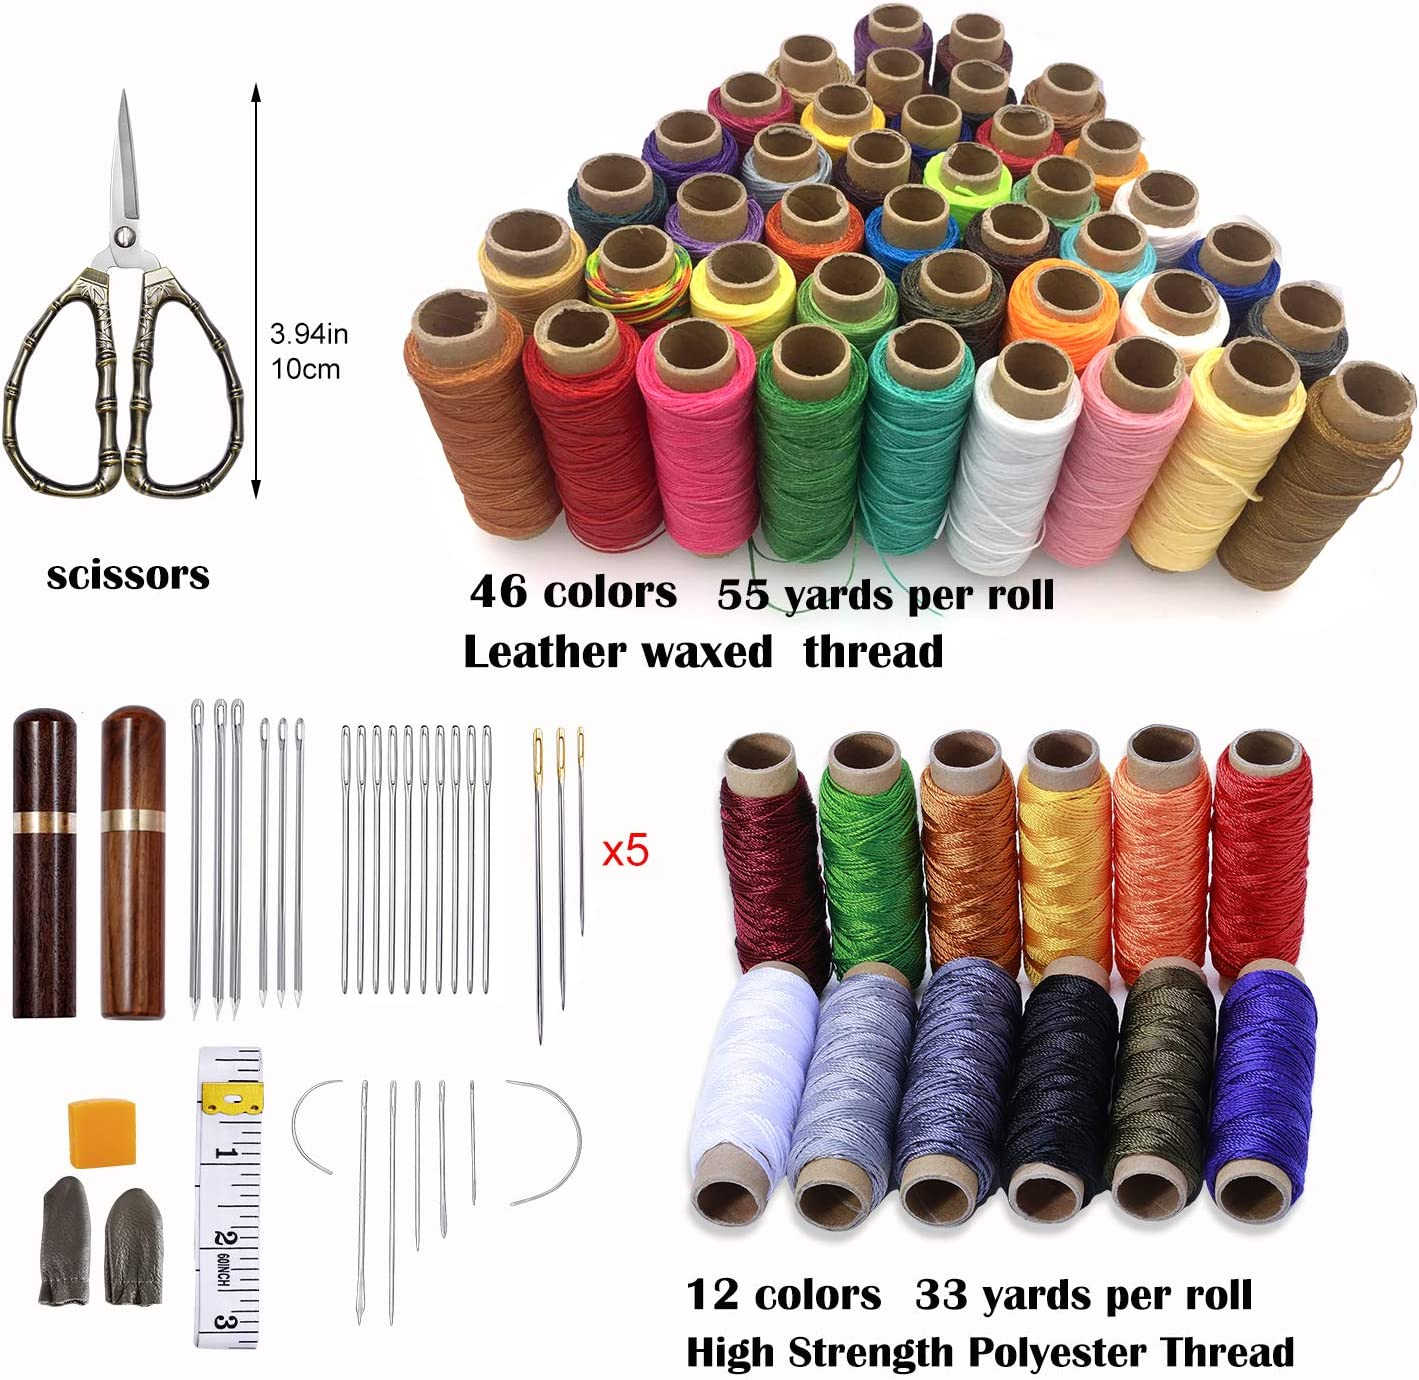 Leathercraft Tough Blunt Stitching /& Sewing Needles x5 Large for Leather